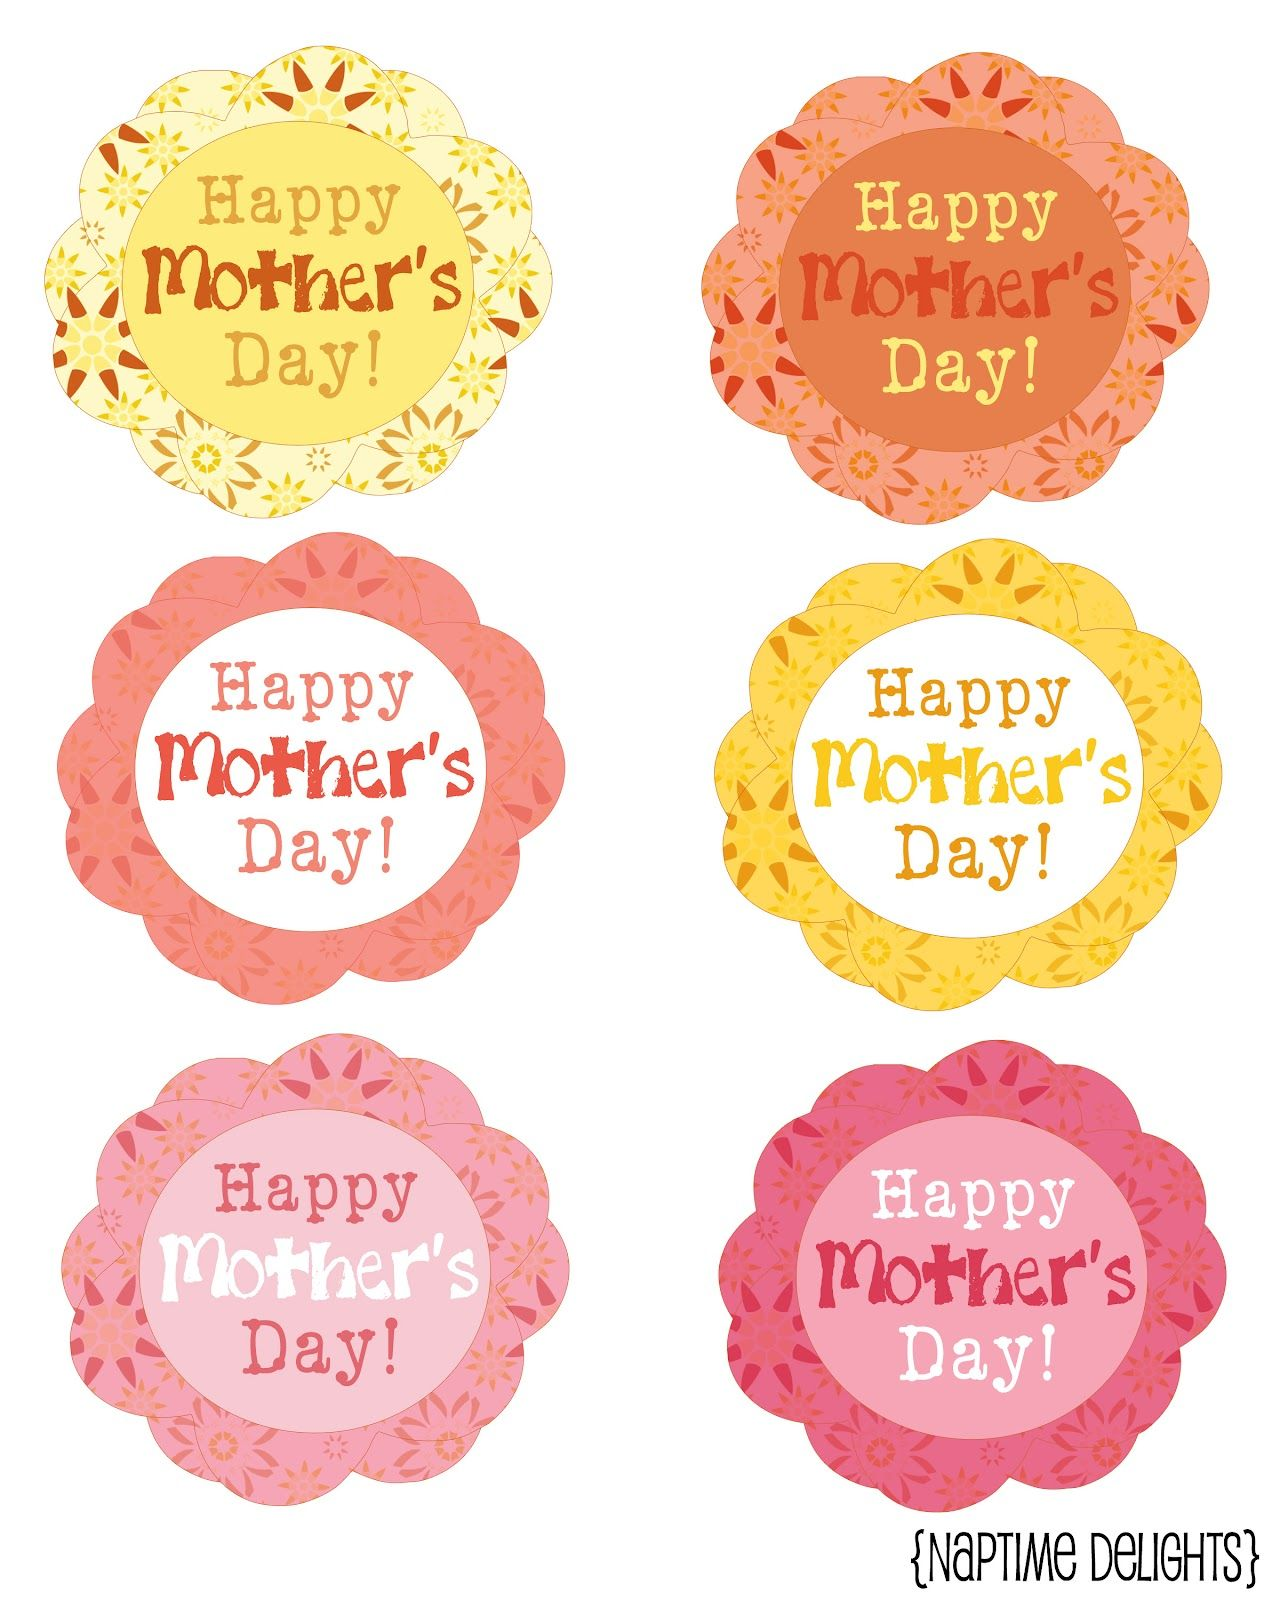 Motherus day gift tag for mom pinterest mothers gift tags and